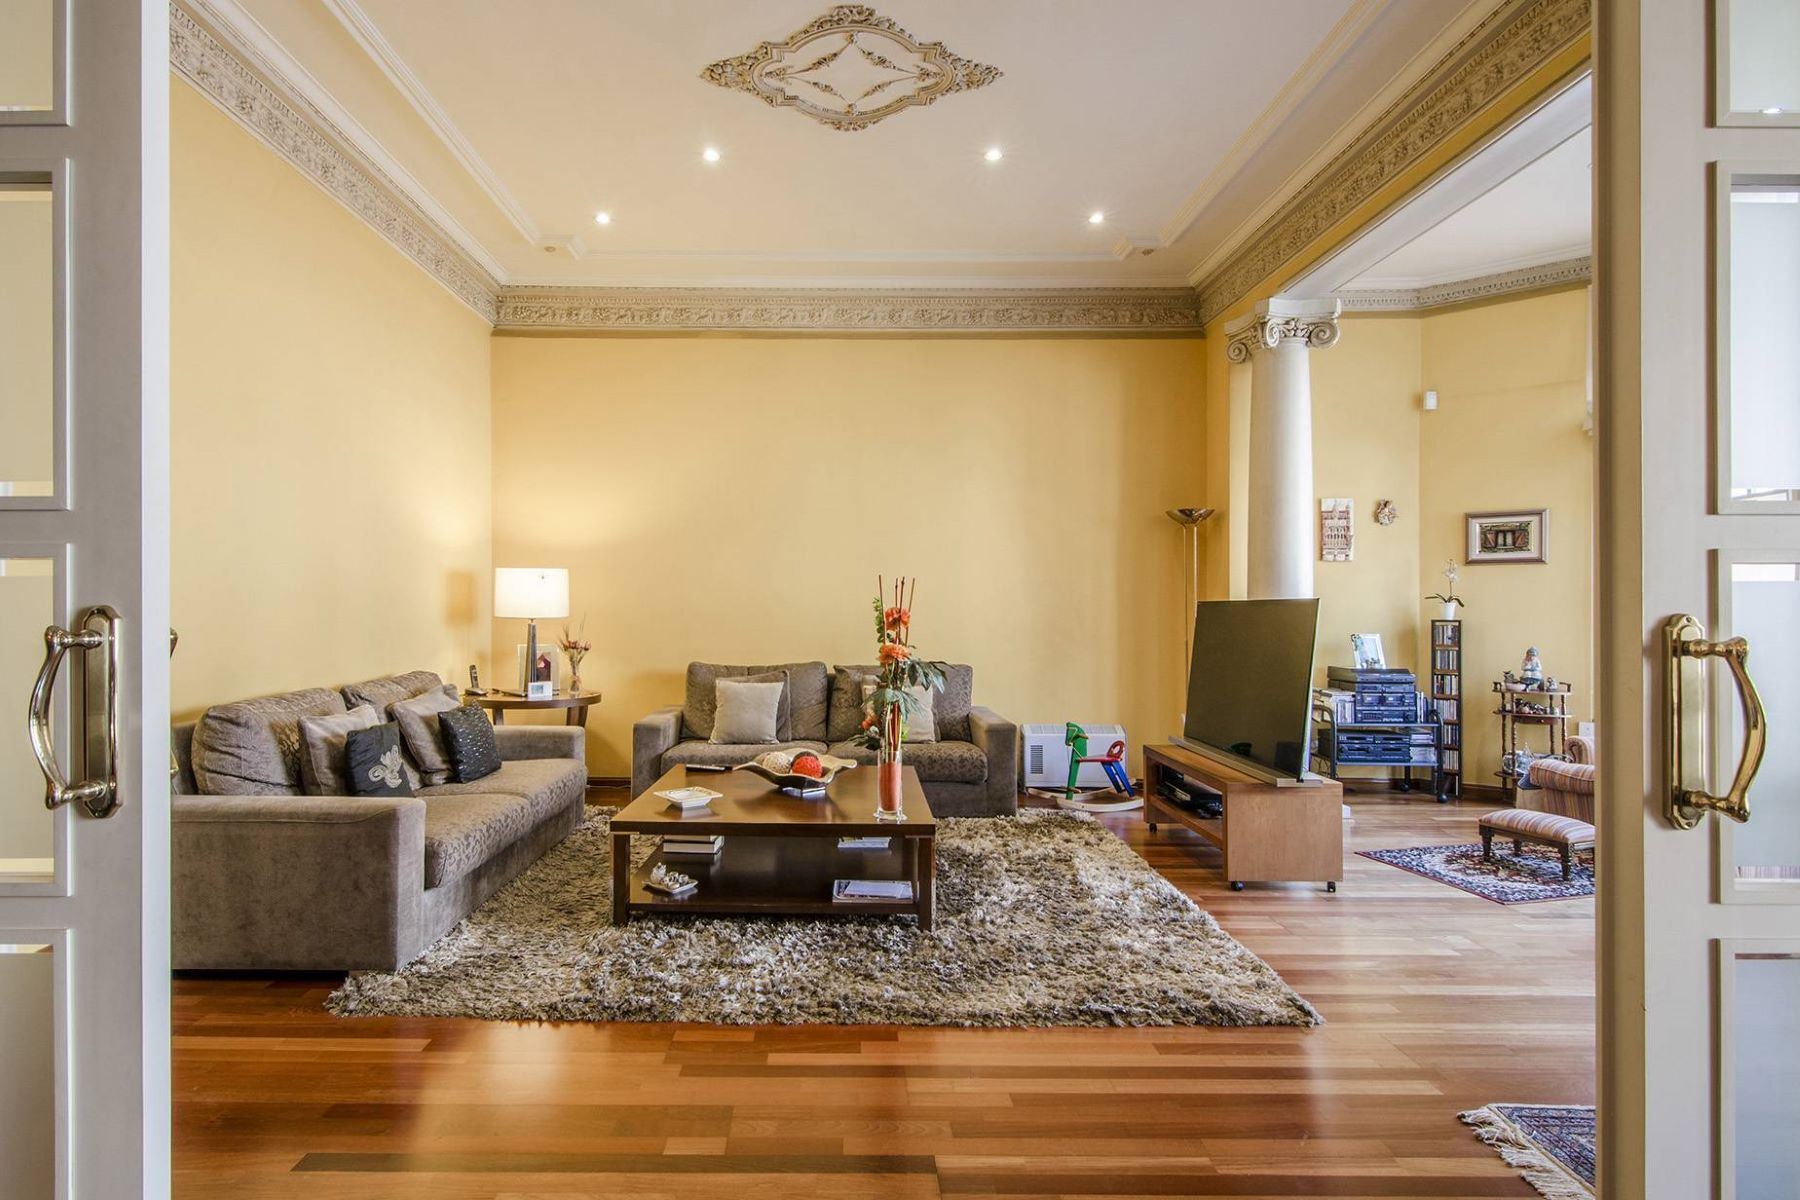 Квартира для того Продажа на Classic Apartment of l'Eixample on Provença street Barcelona City, Barcelona, 08007 Испания